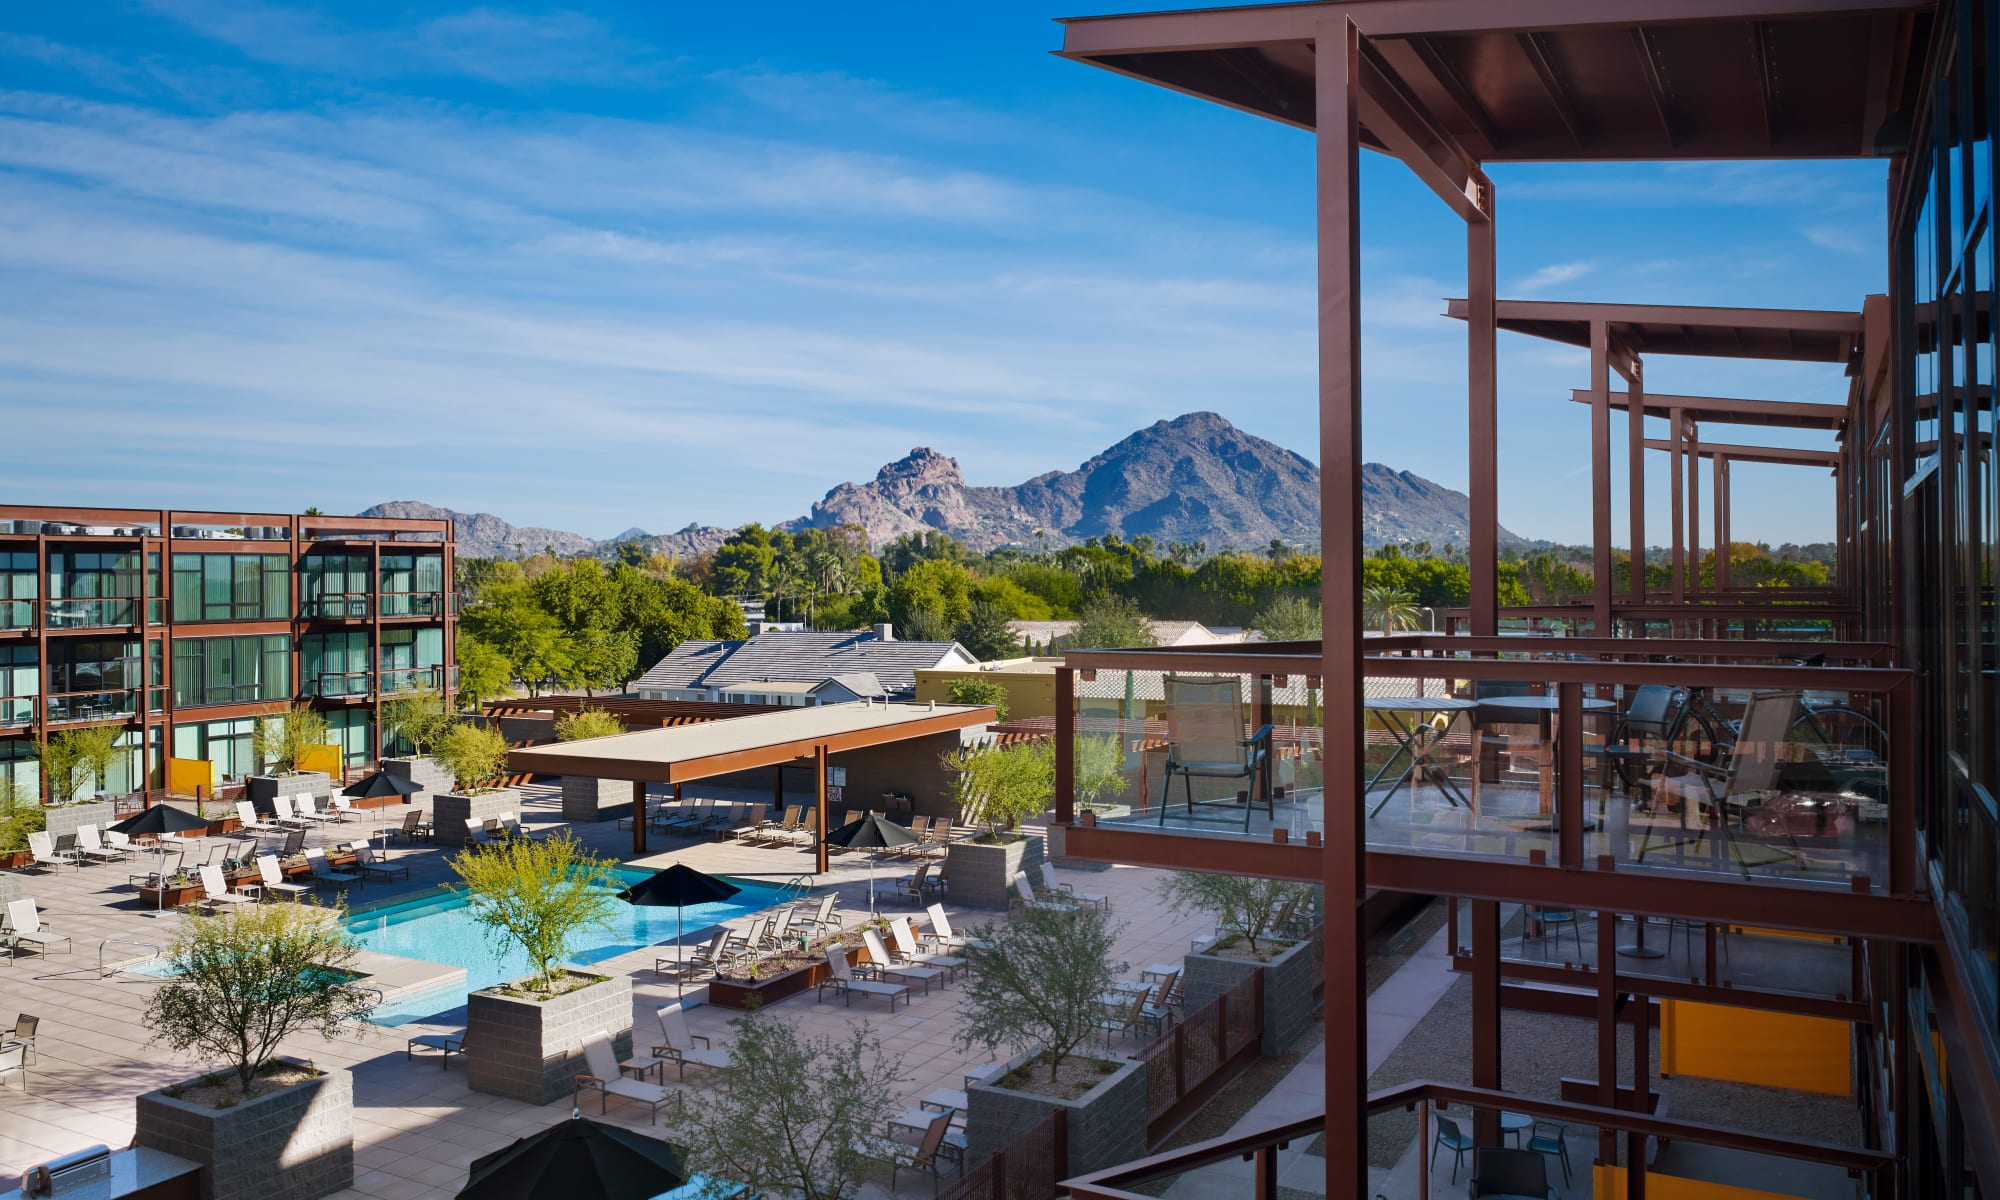 Apartments at Domus in Phoenix, Arizona